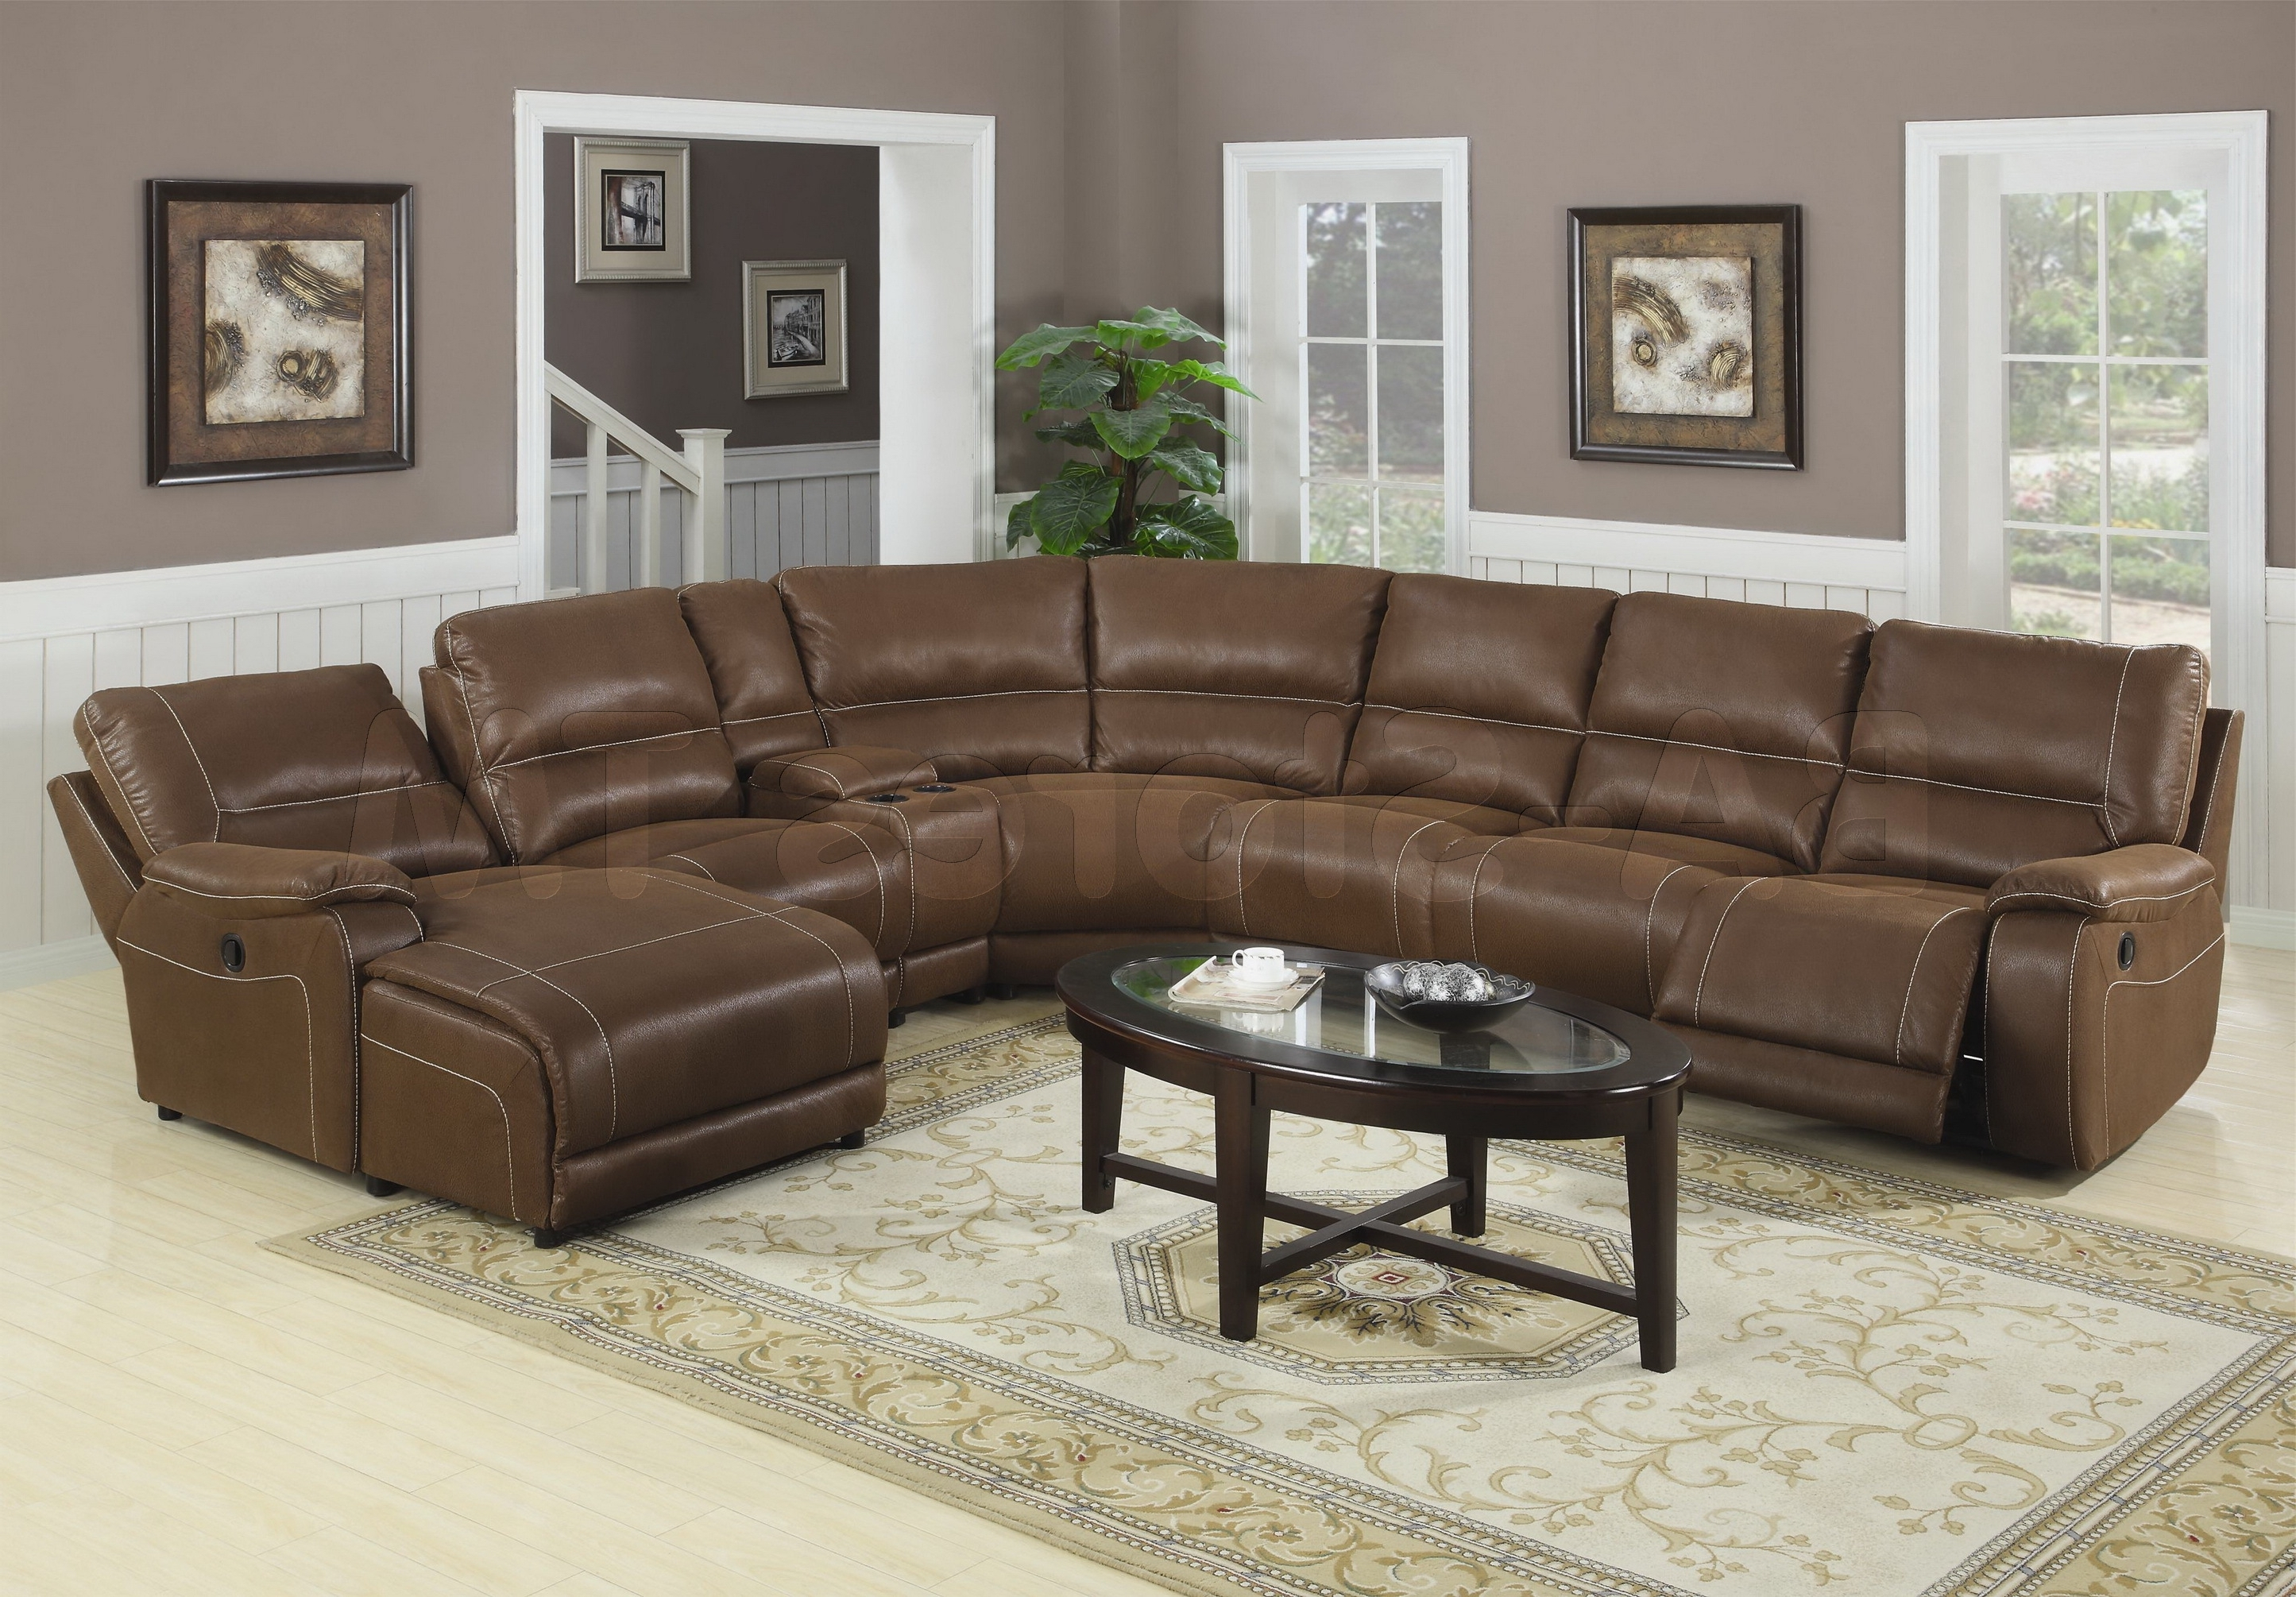 Famous Large Sectional Sofas Within Sectional Sofa Design: Simple Large Sectional Sofa With Chaise (View 5 of 20)